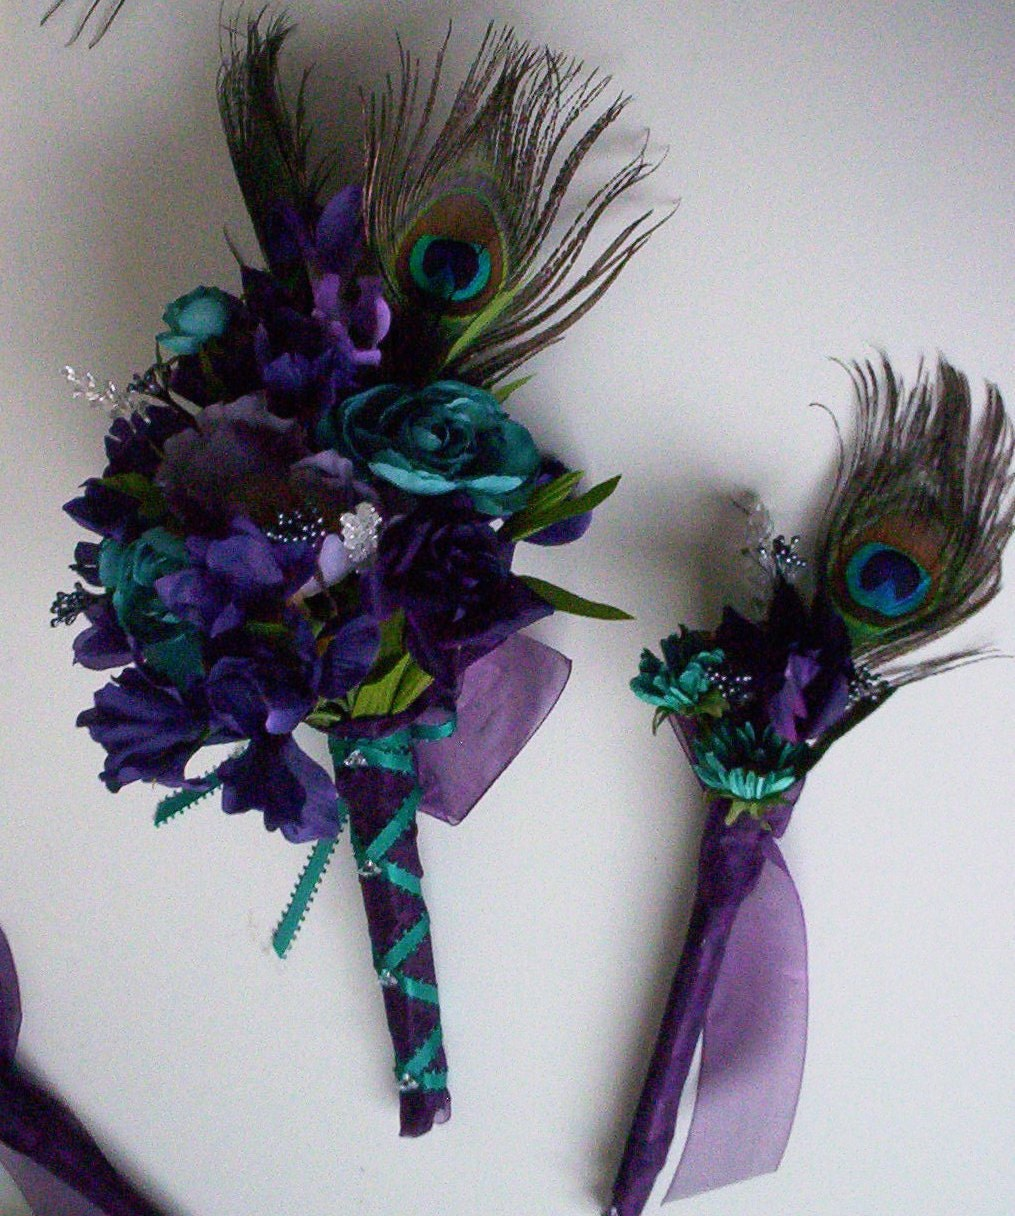 Best Ideas For Purple And Teal Wedding: Weddings Peacock Purple Teal Bridal Bouquets 15 Piece Package